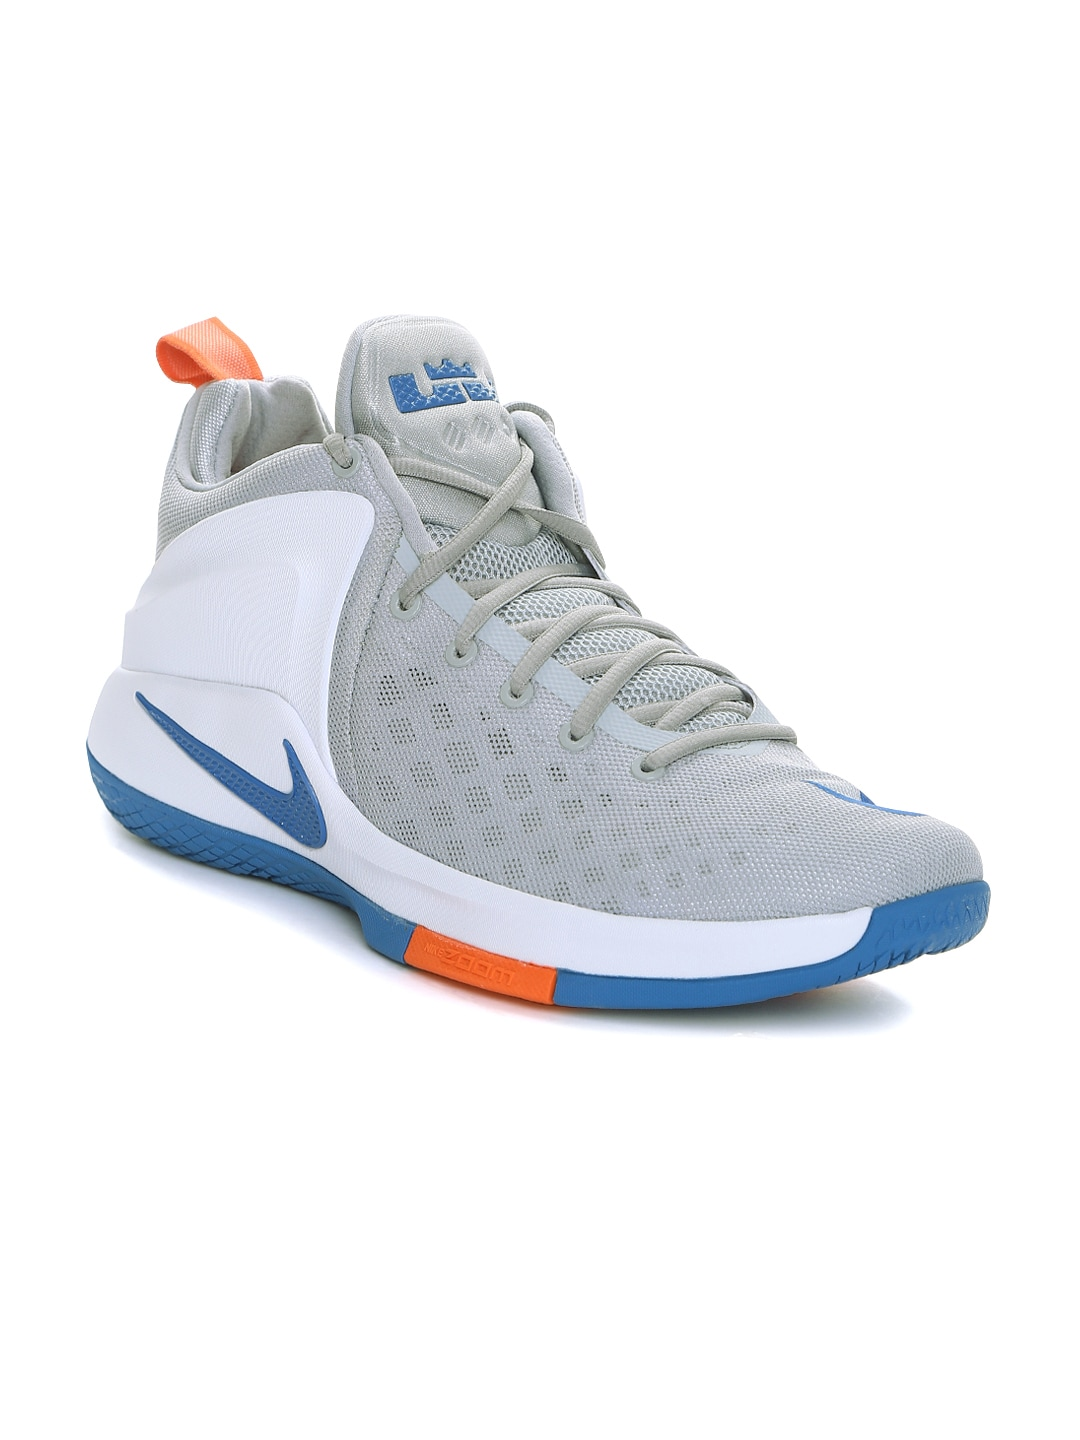 buy popular b7671 56935 Nike 852439-004 Men Grey And White Zoom Witness Lebron James Mid Top  Basketball Shoes- Price in India